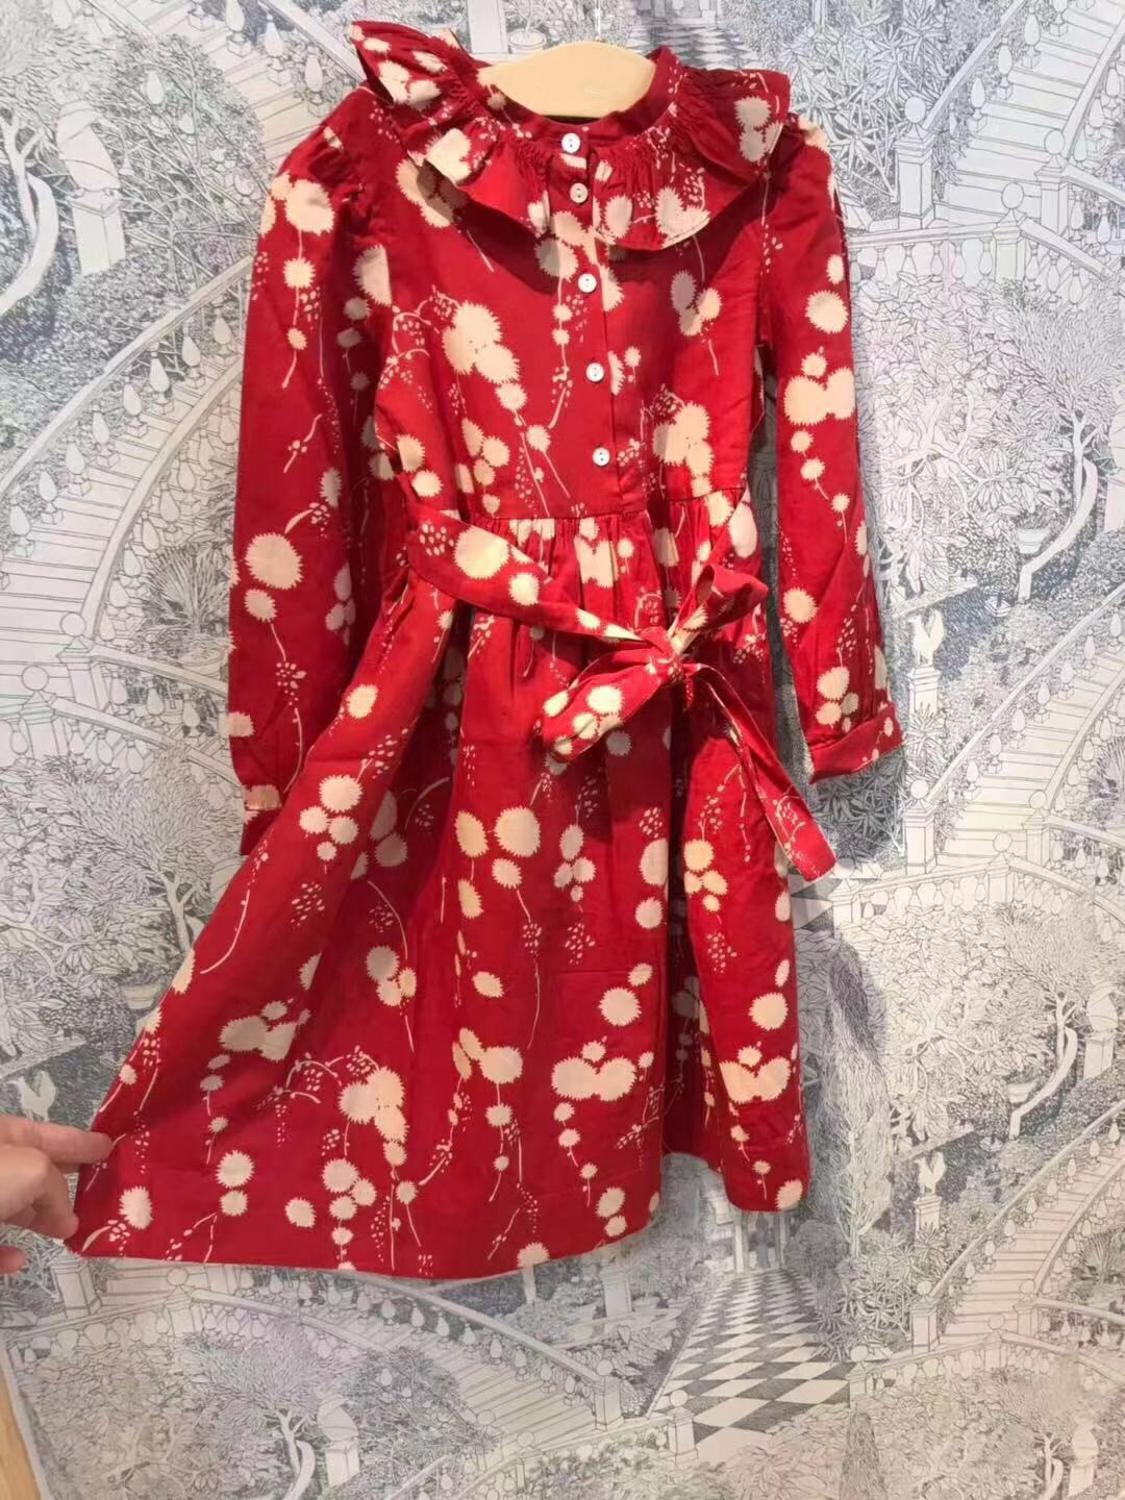 Girls Dress Daughter Clothing Printed Boutique Family-Look Red Mon Brand Dandelion Cherry